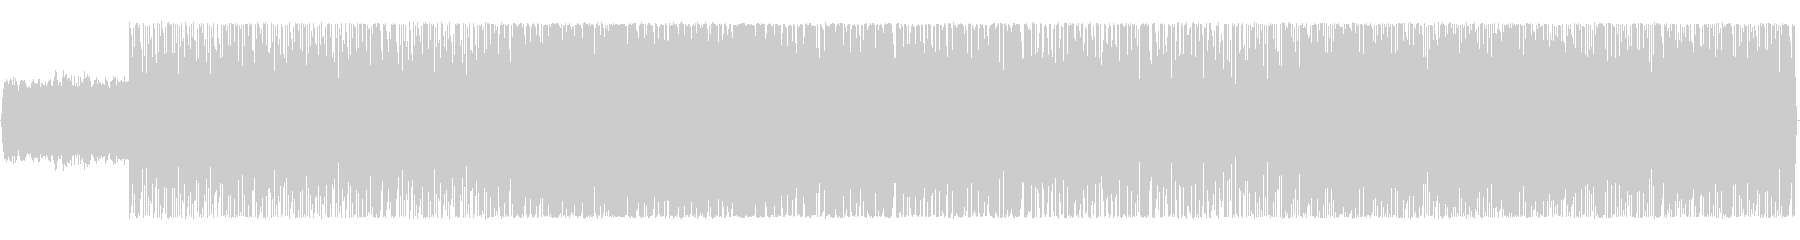 Groovy Distortion's unreproduced waveform